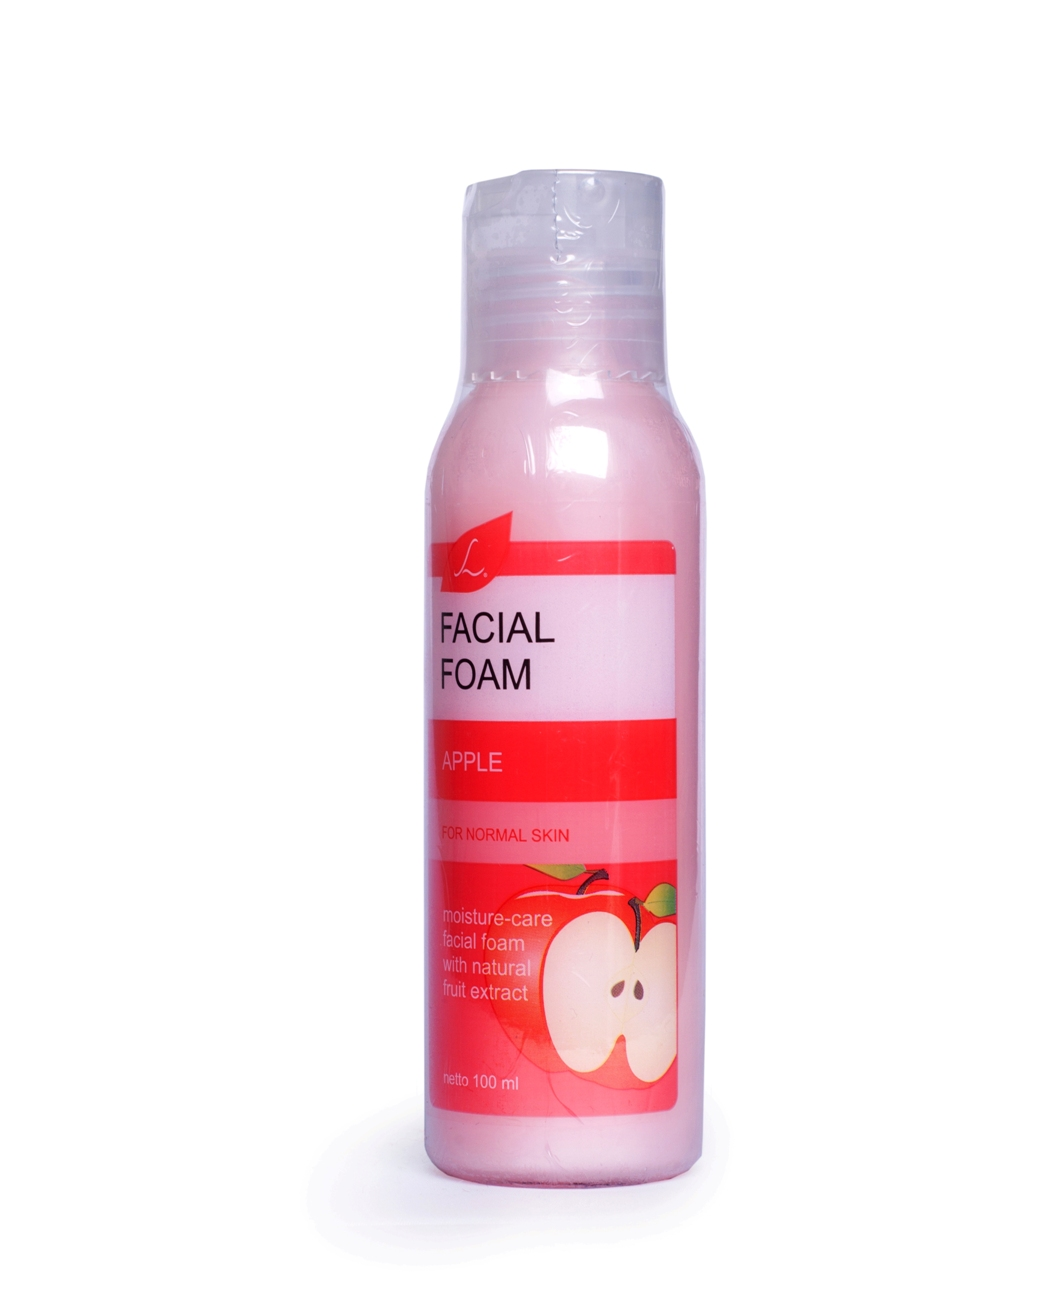 L Facial Foam Apple